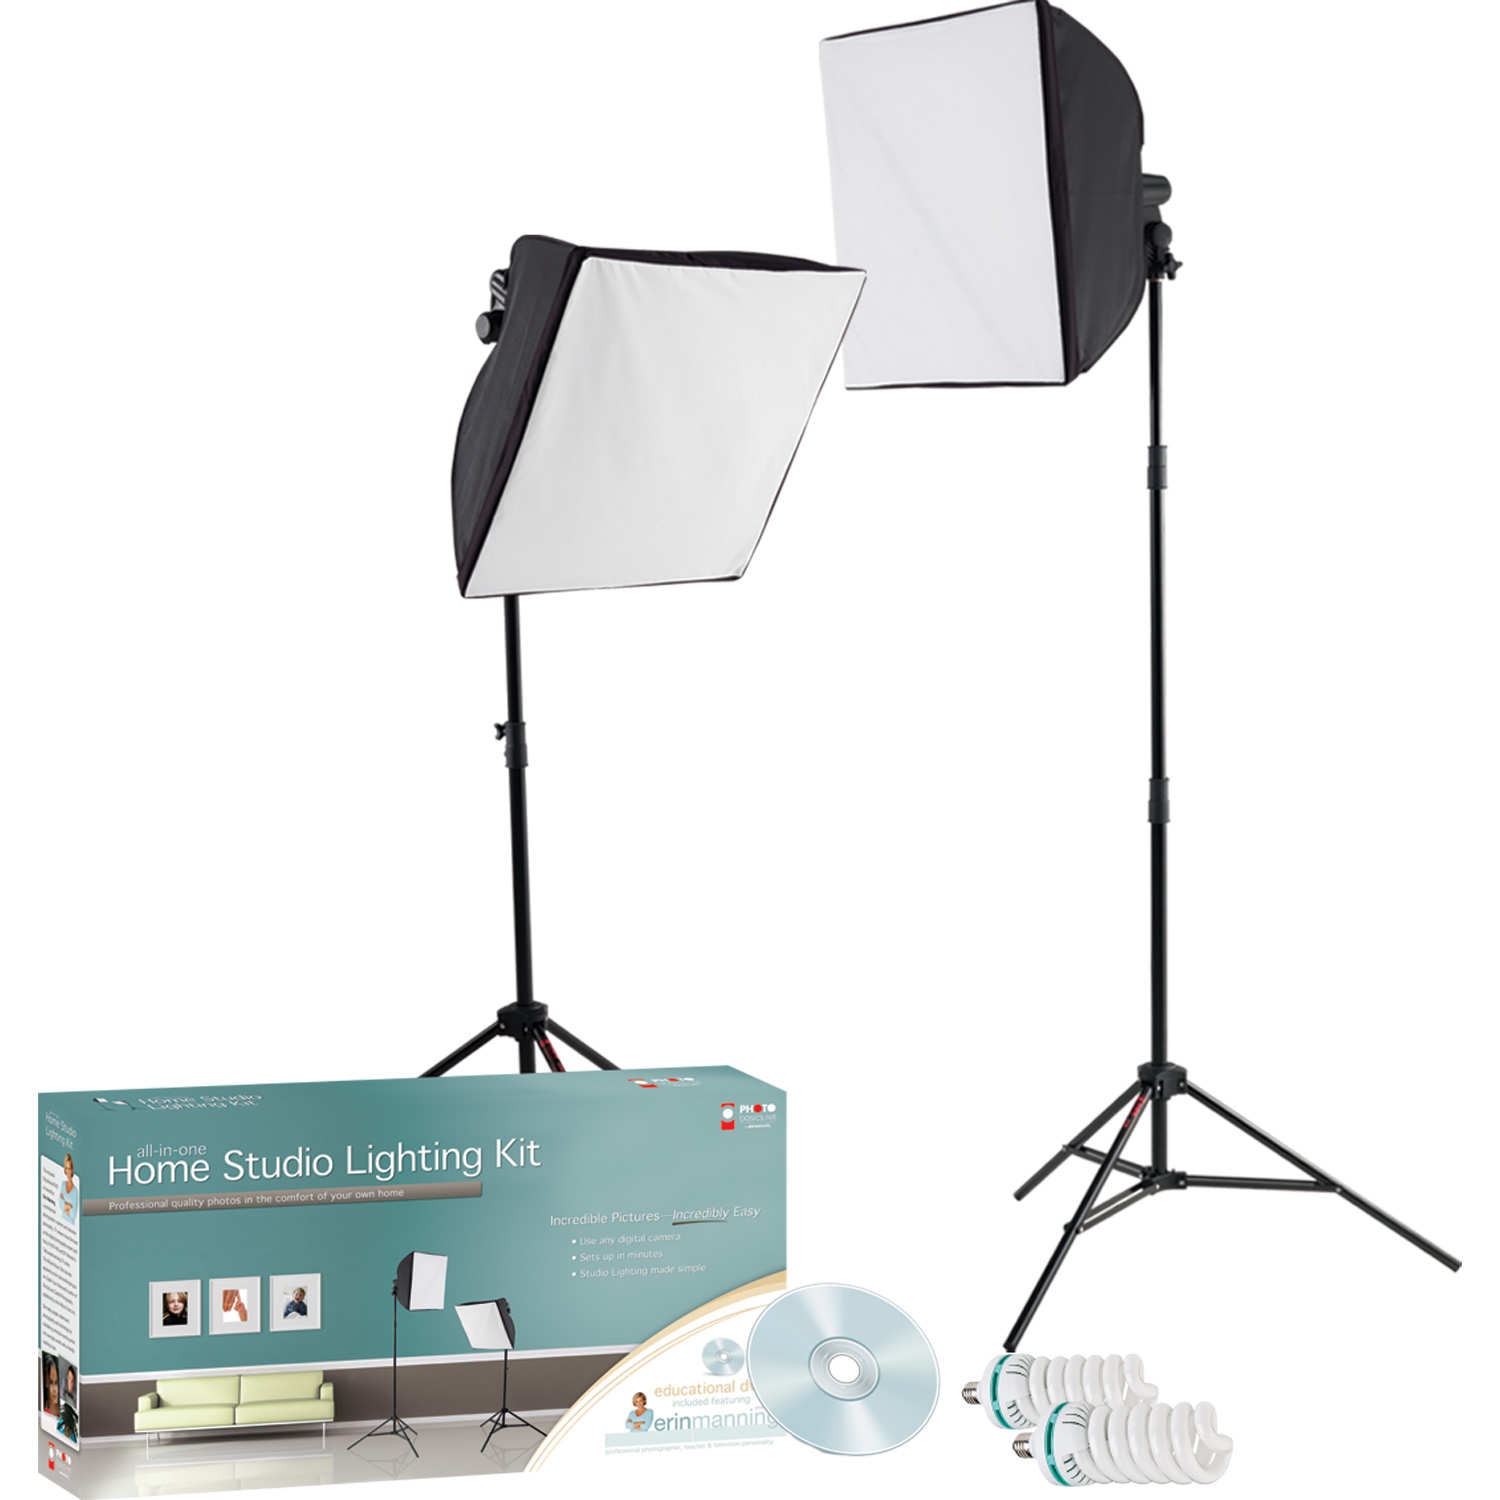 uLite Home Studio Lighting Kit